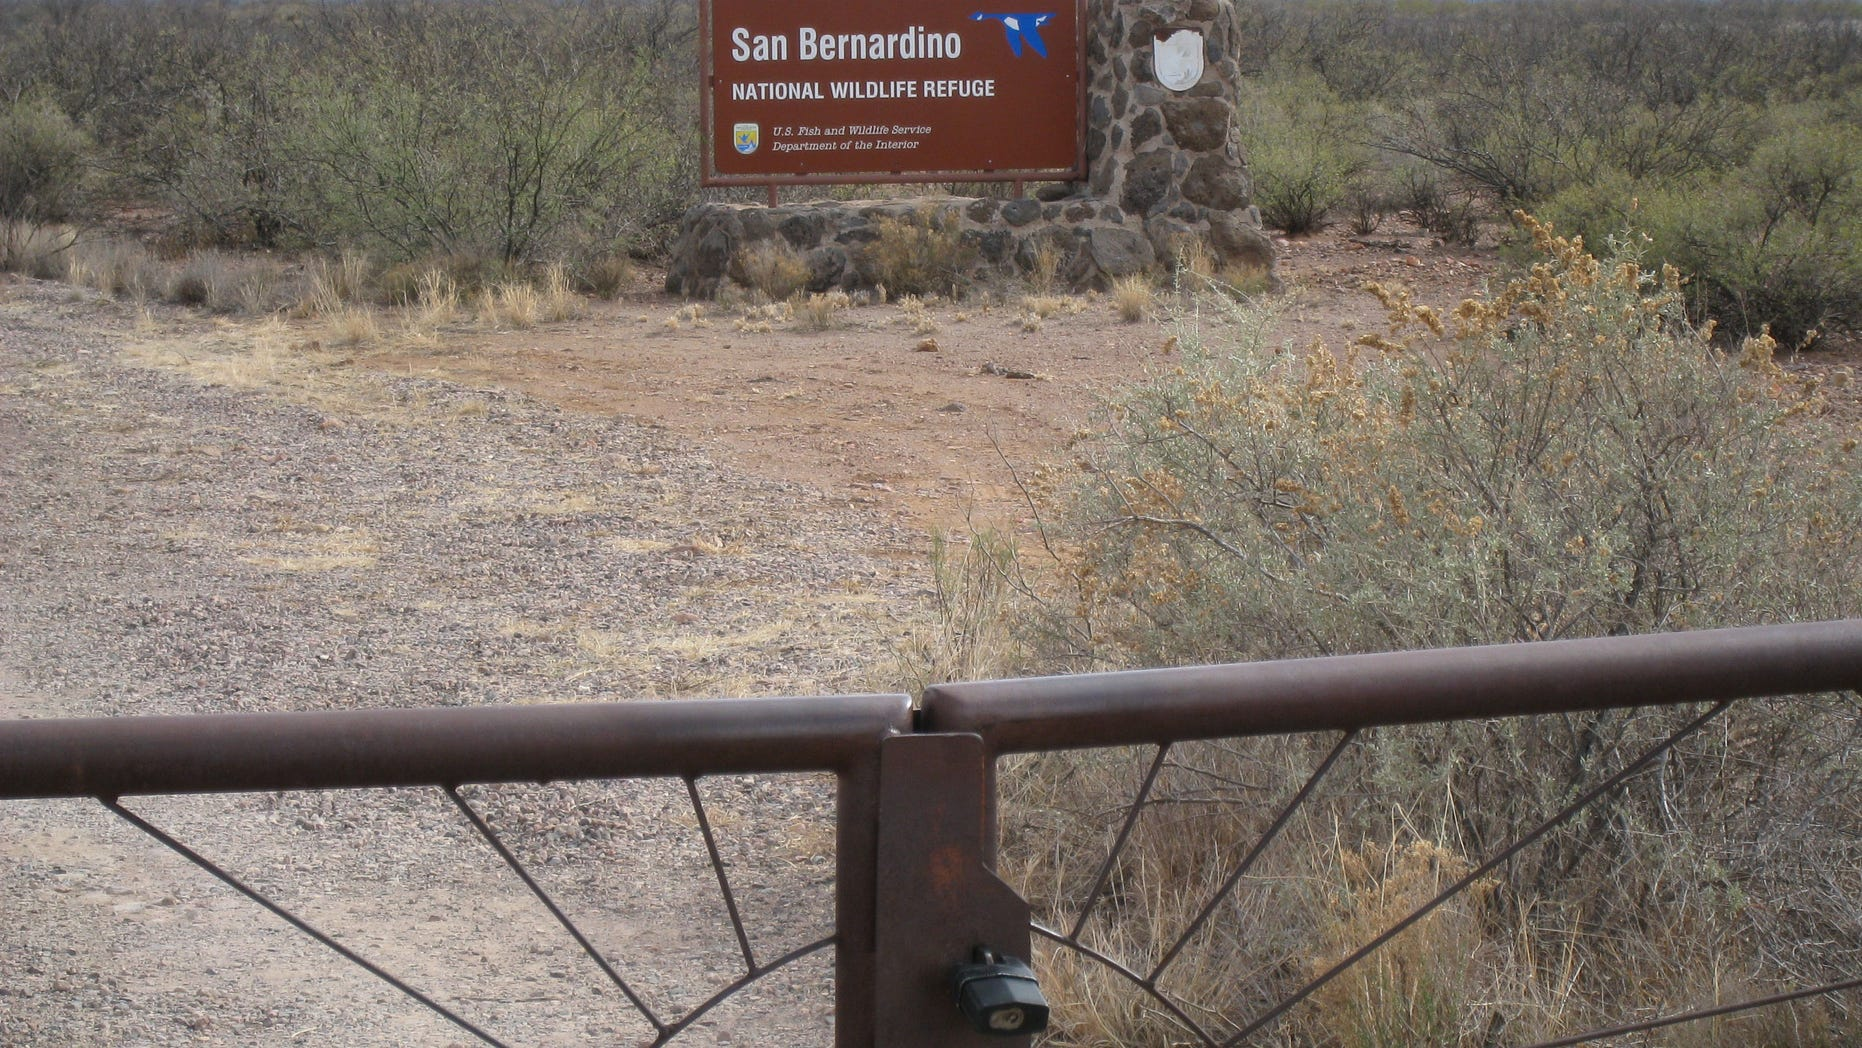 Jan. 8, 2010:  A locked gate at the San Bernardino National Wildlife Refuge, where U.S. Customs and Border Protection agents usually wait for U.S. Forest Service officials to escort them onto federal lands even though they have keys for life-threatening situations, according to the House of Representatives' Natural Resources Committee Republicans.